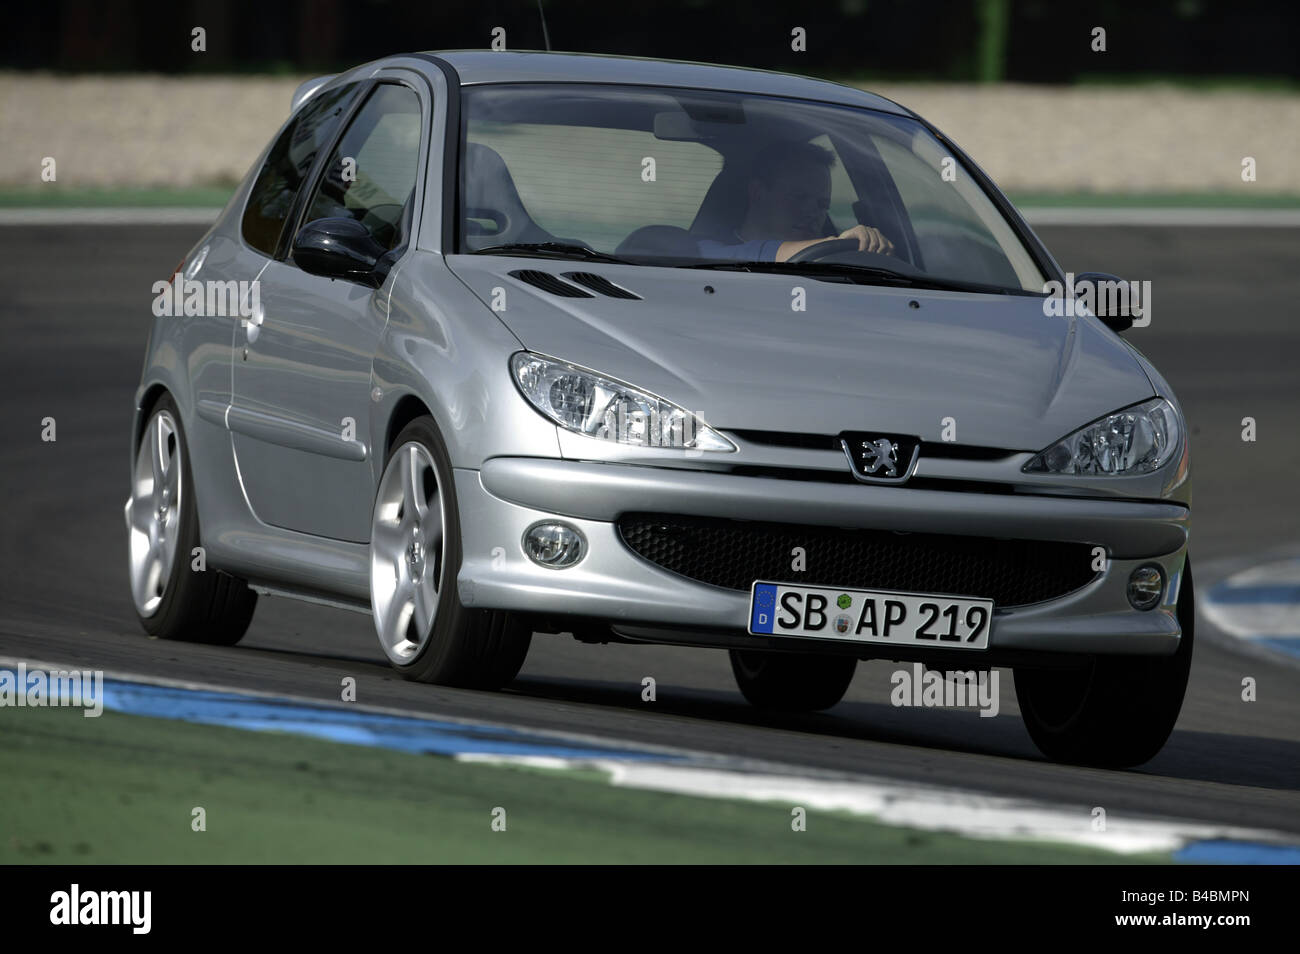 Car Peugeot 206 Rc Limousine Small Approx Model Year 2003 Stock Photo Alamy